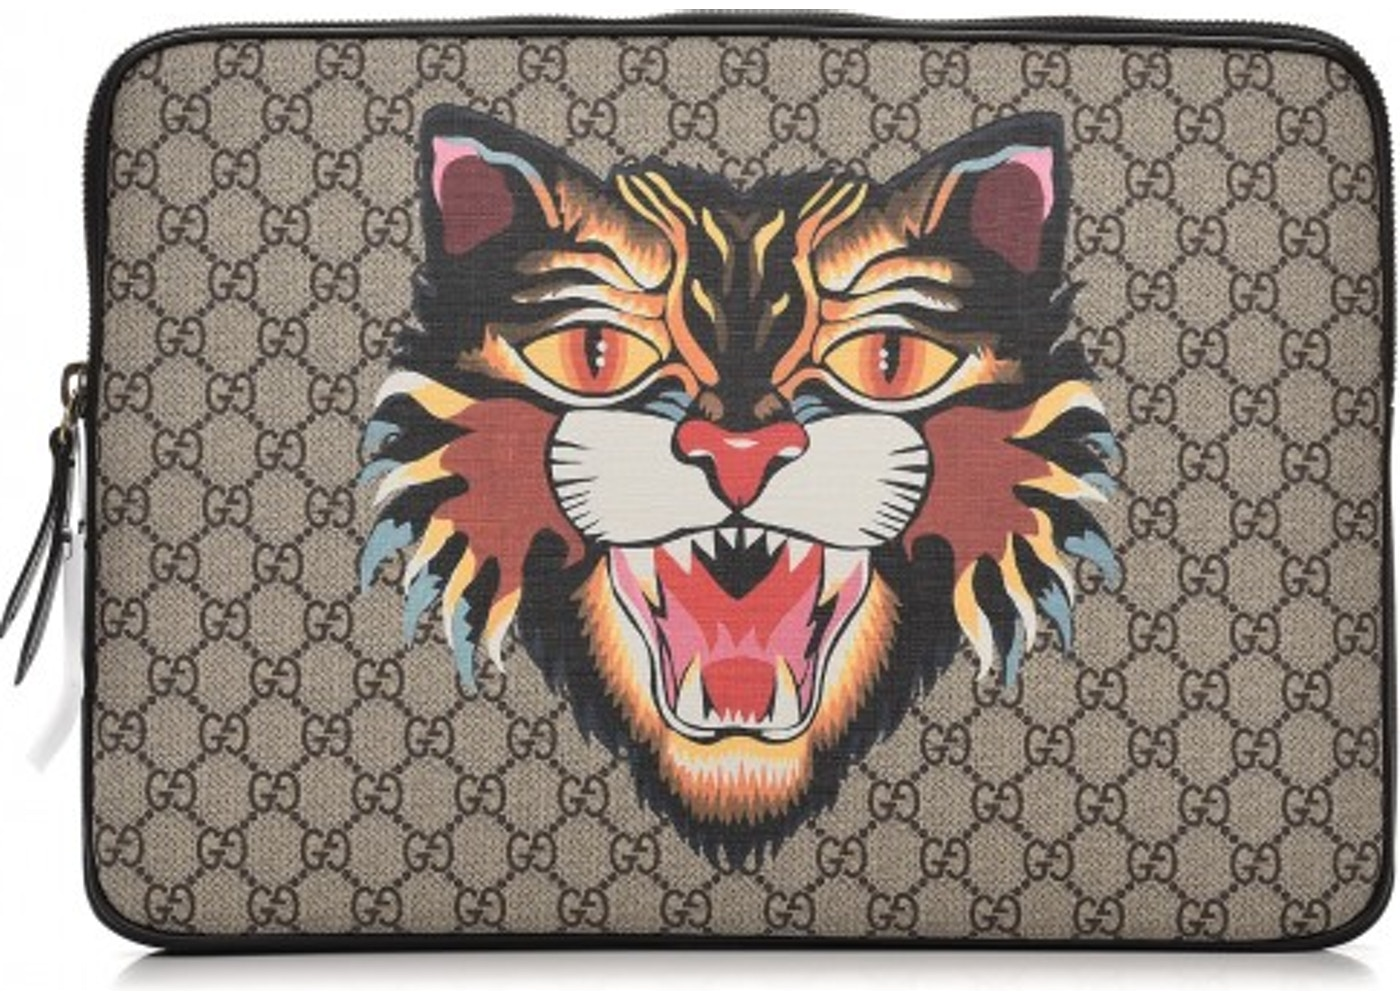 88d1a9c55b26 Gucci Laptop Case Monogram GG Supreme Angry Cat Print Beige ...